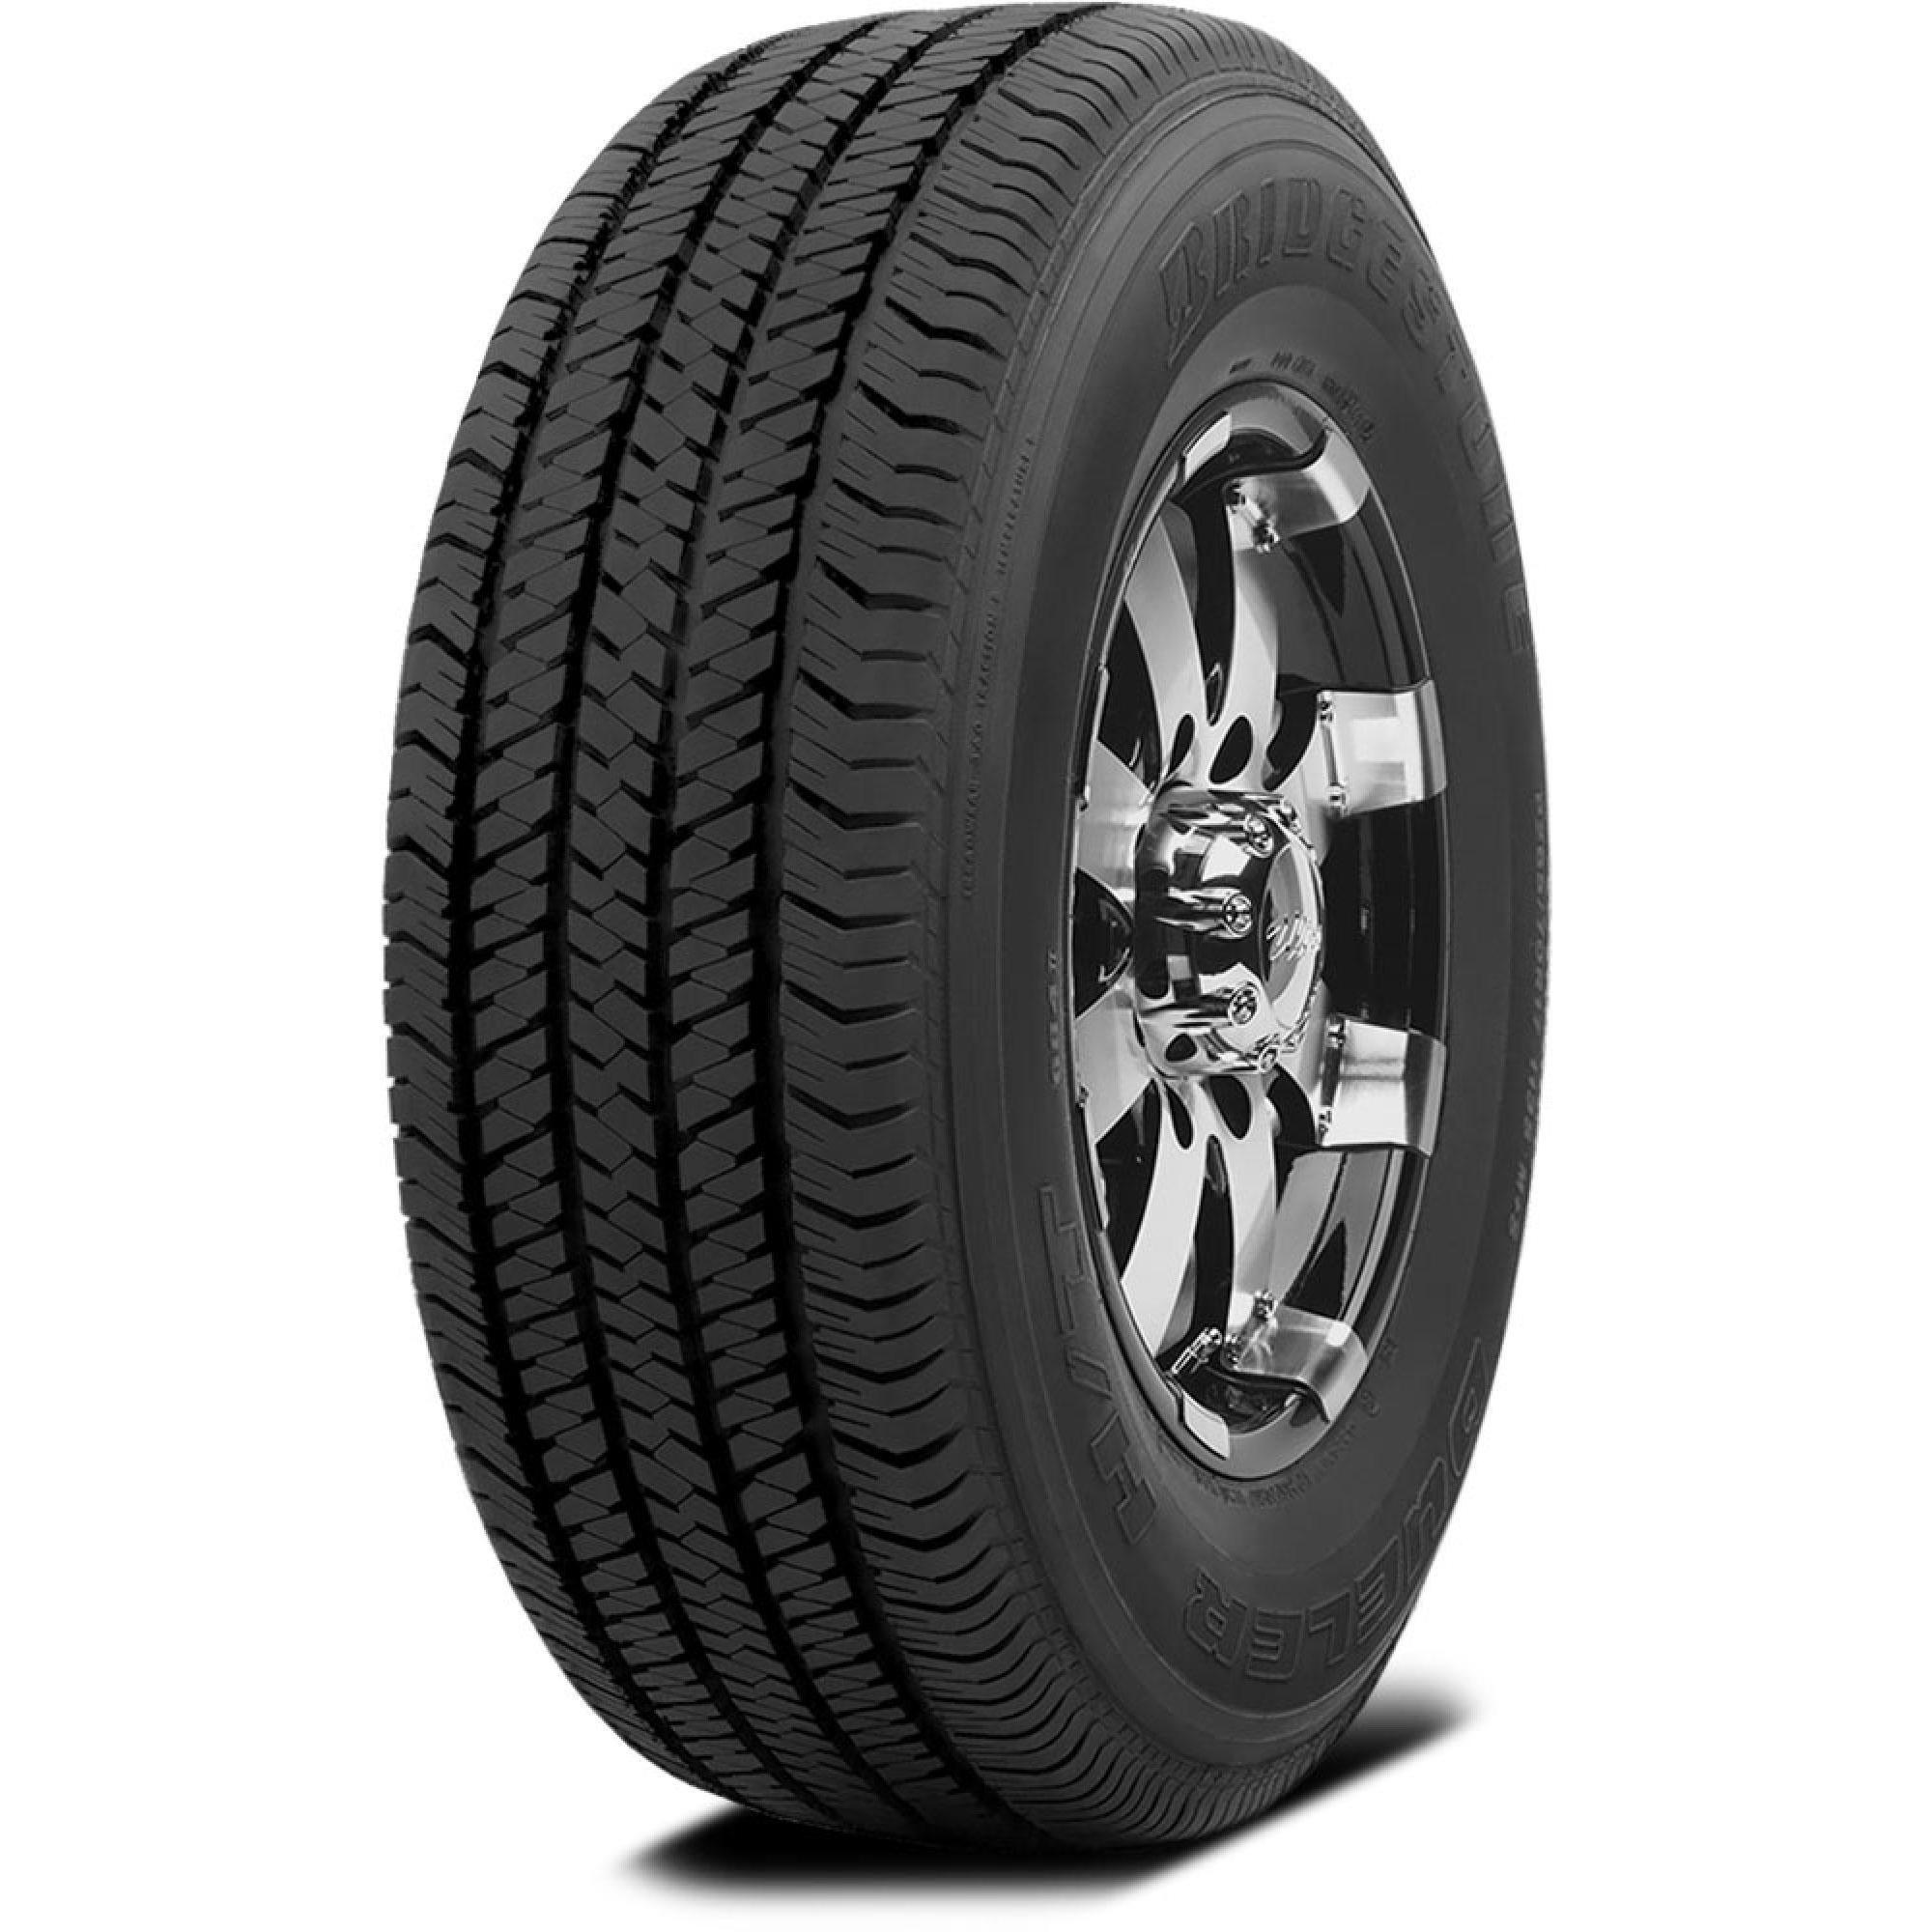 Bridgestone Tire Deals >> Bridgestone Dueler H/T (D684 II) | TireBuyer